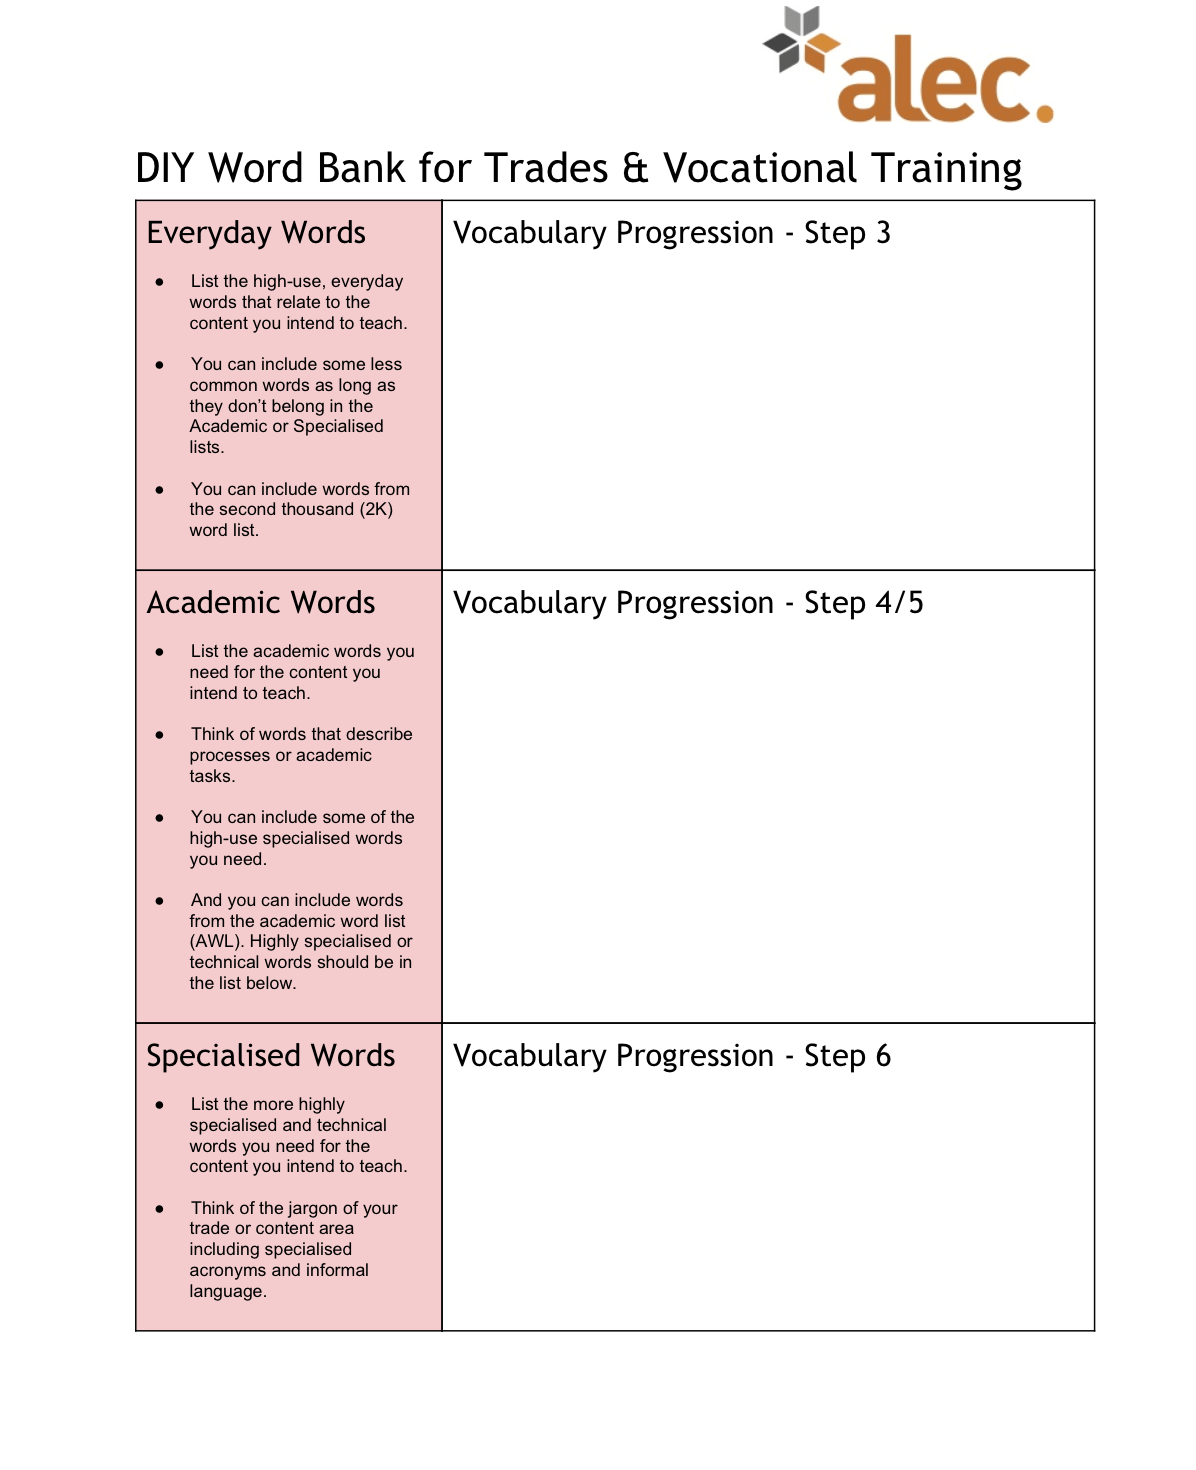 How To Get Started Embedding Vocabulary Into Your Training